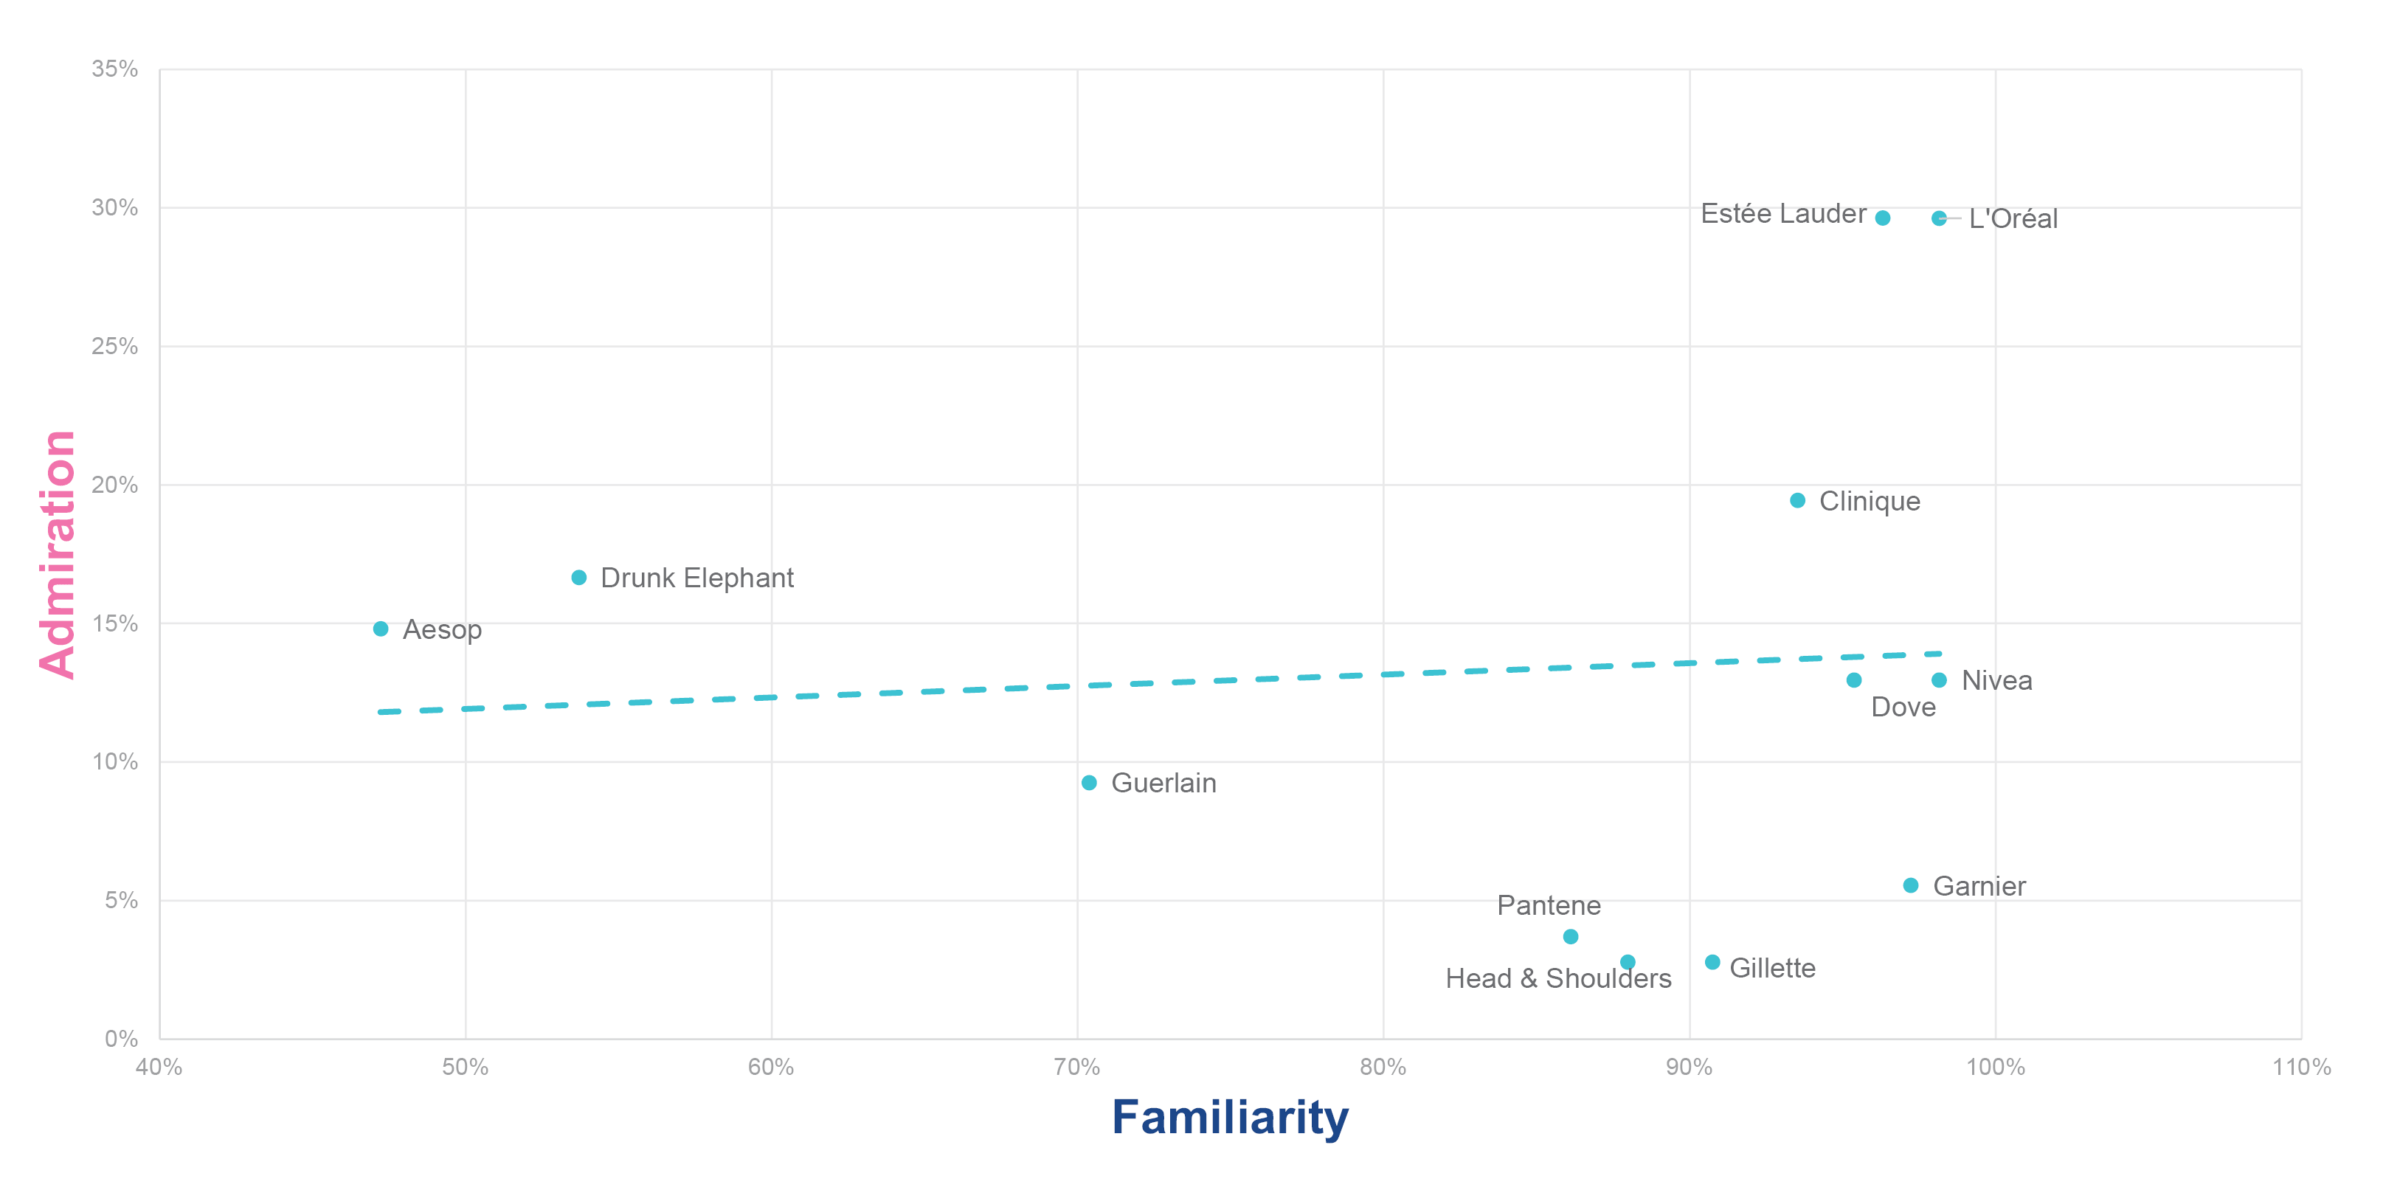 Share of sample familiar with vs. admiring the brands